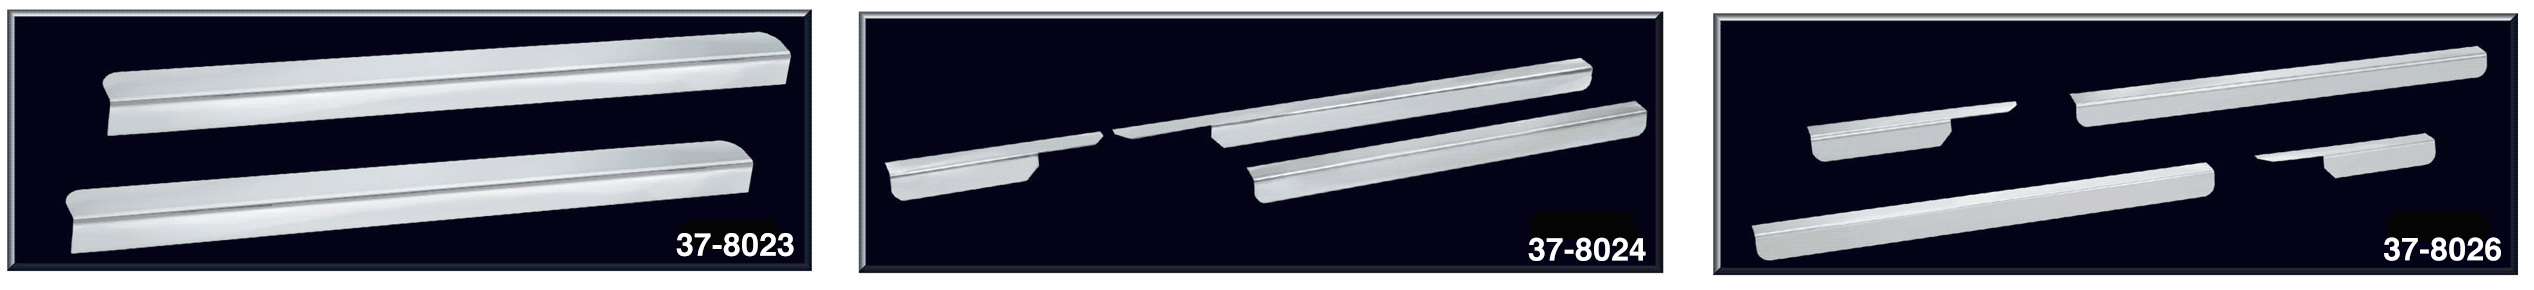 Polished Stainless Steel Threshold Plate Sets